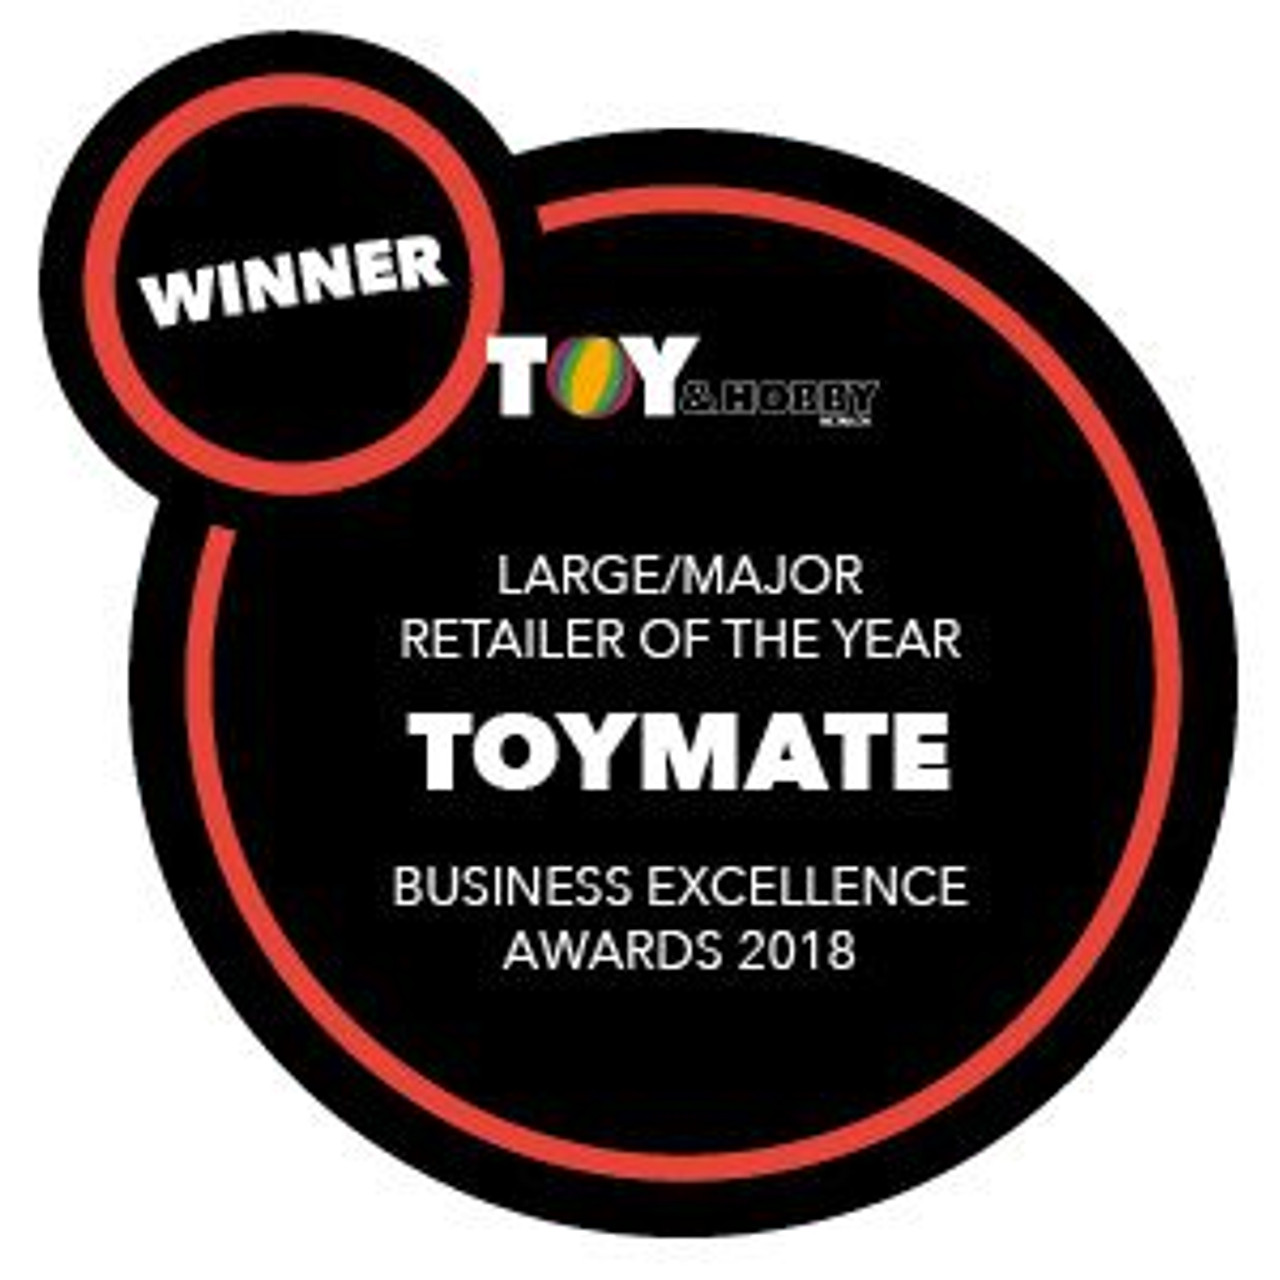 Toymate Wins Toy & Hobby Large Toy Retailer of the Year for 2018